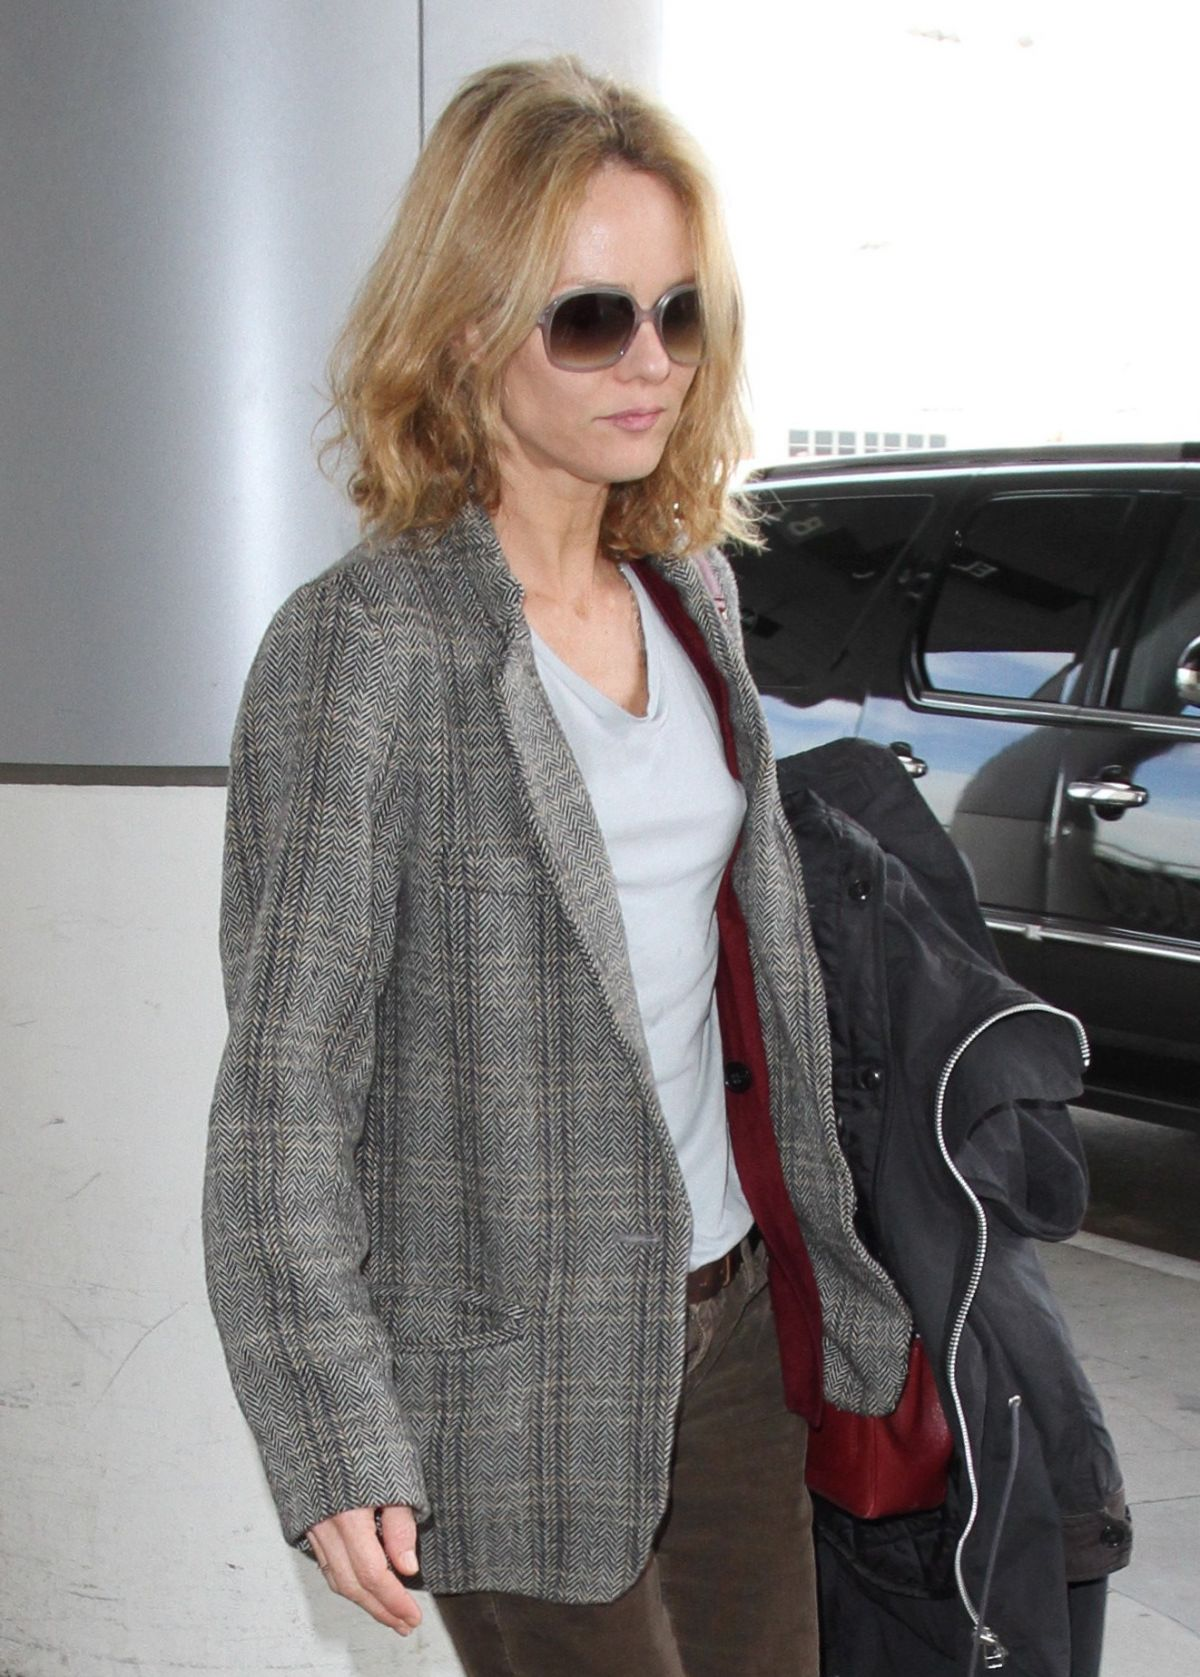 VANESSA PARADIS at LAX Airport in Los Angeles 01/22/2016